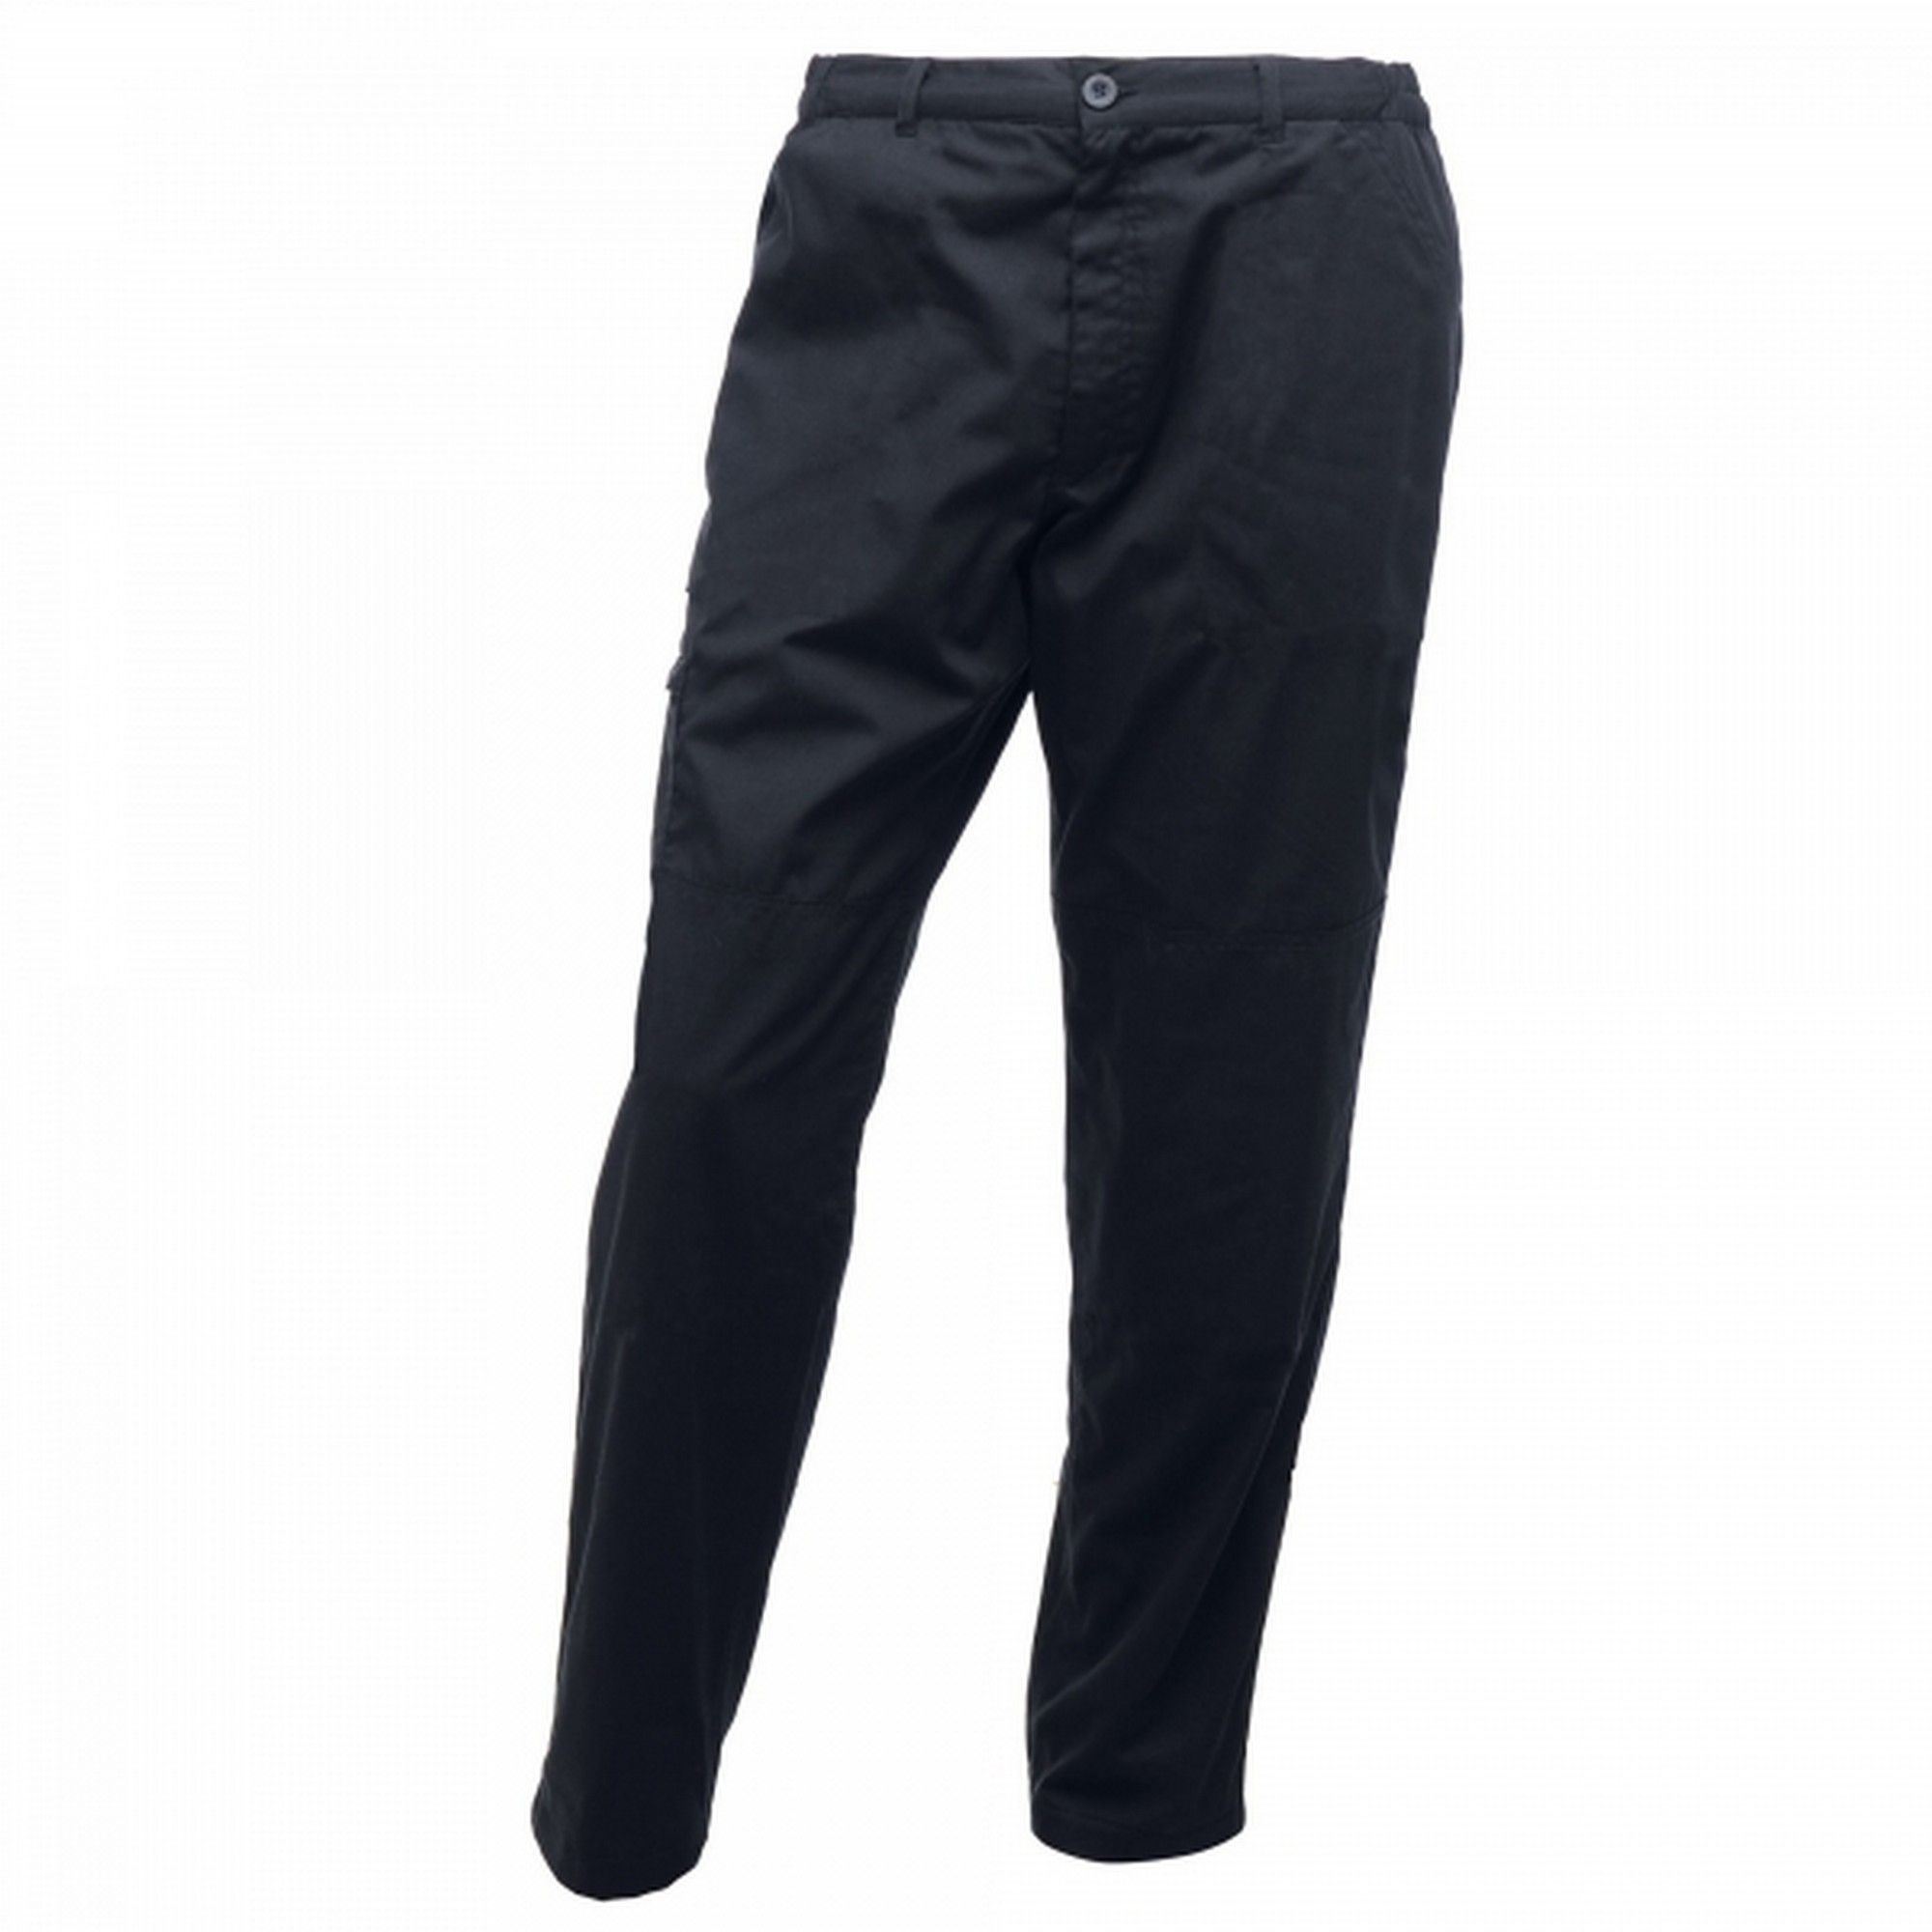 Regatta Mens Pro Cargo Waterproof Trousers - Regular